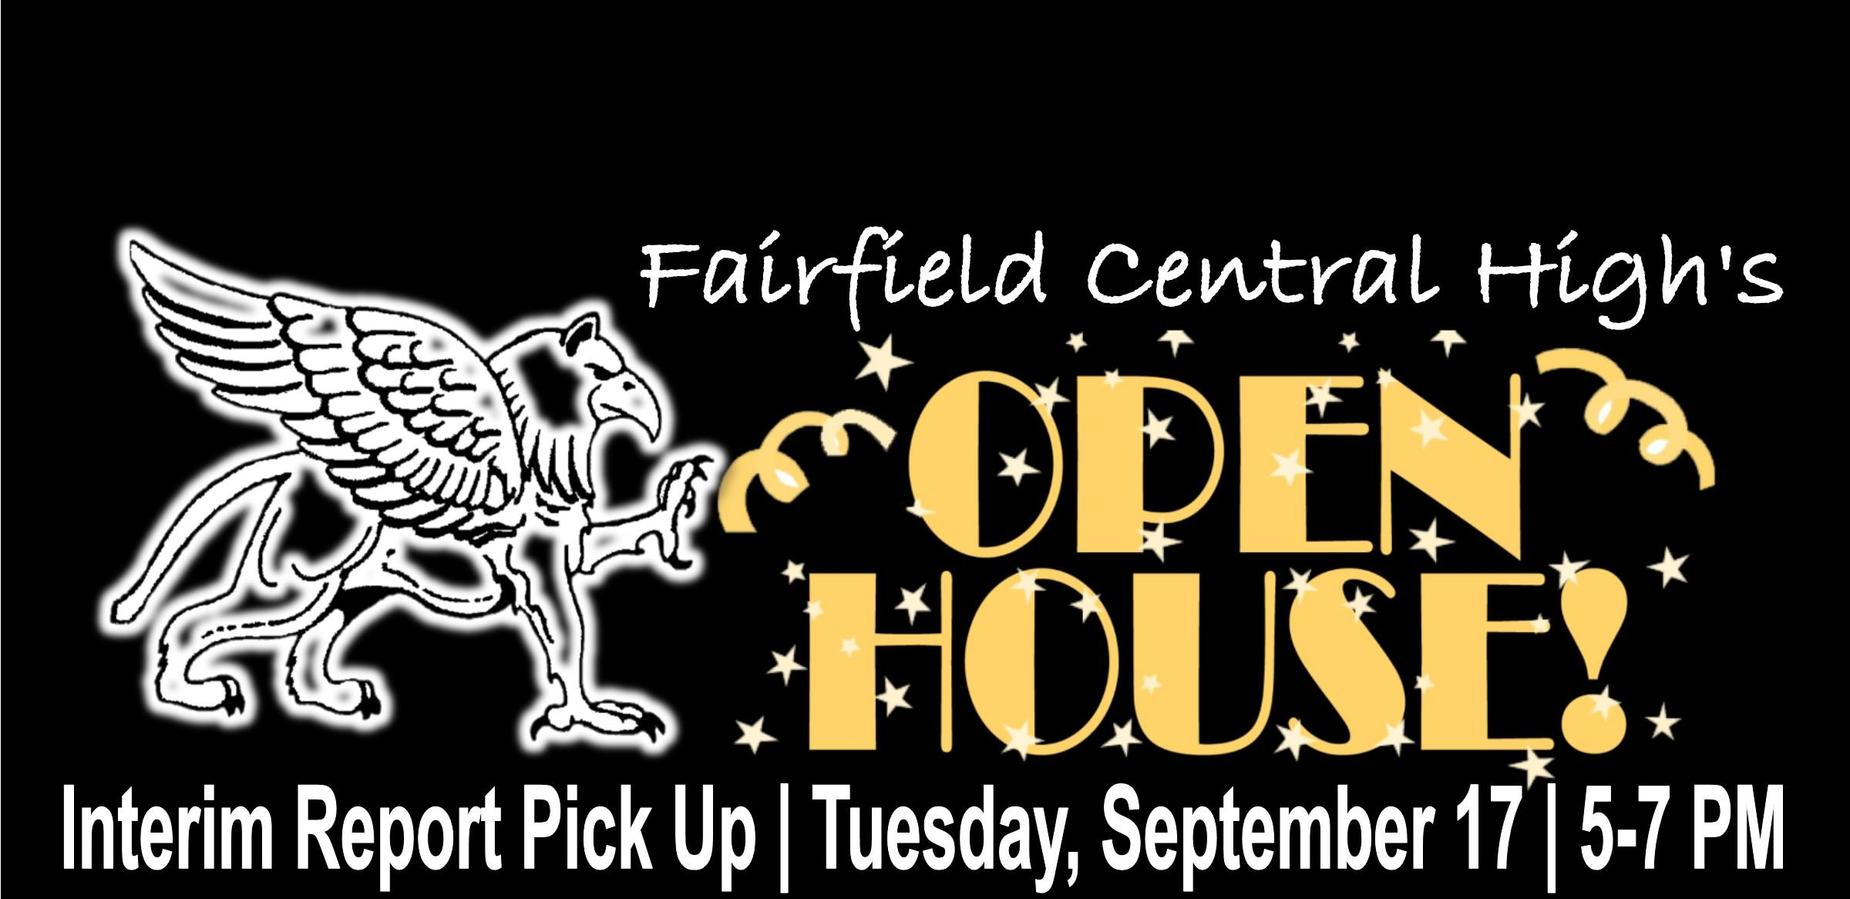 FCHS's Open House. Interim Report Pick up on Tuesday, September 17 from 5-7 PM.